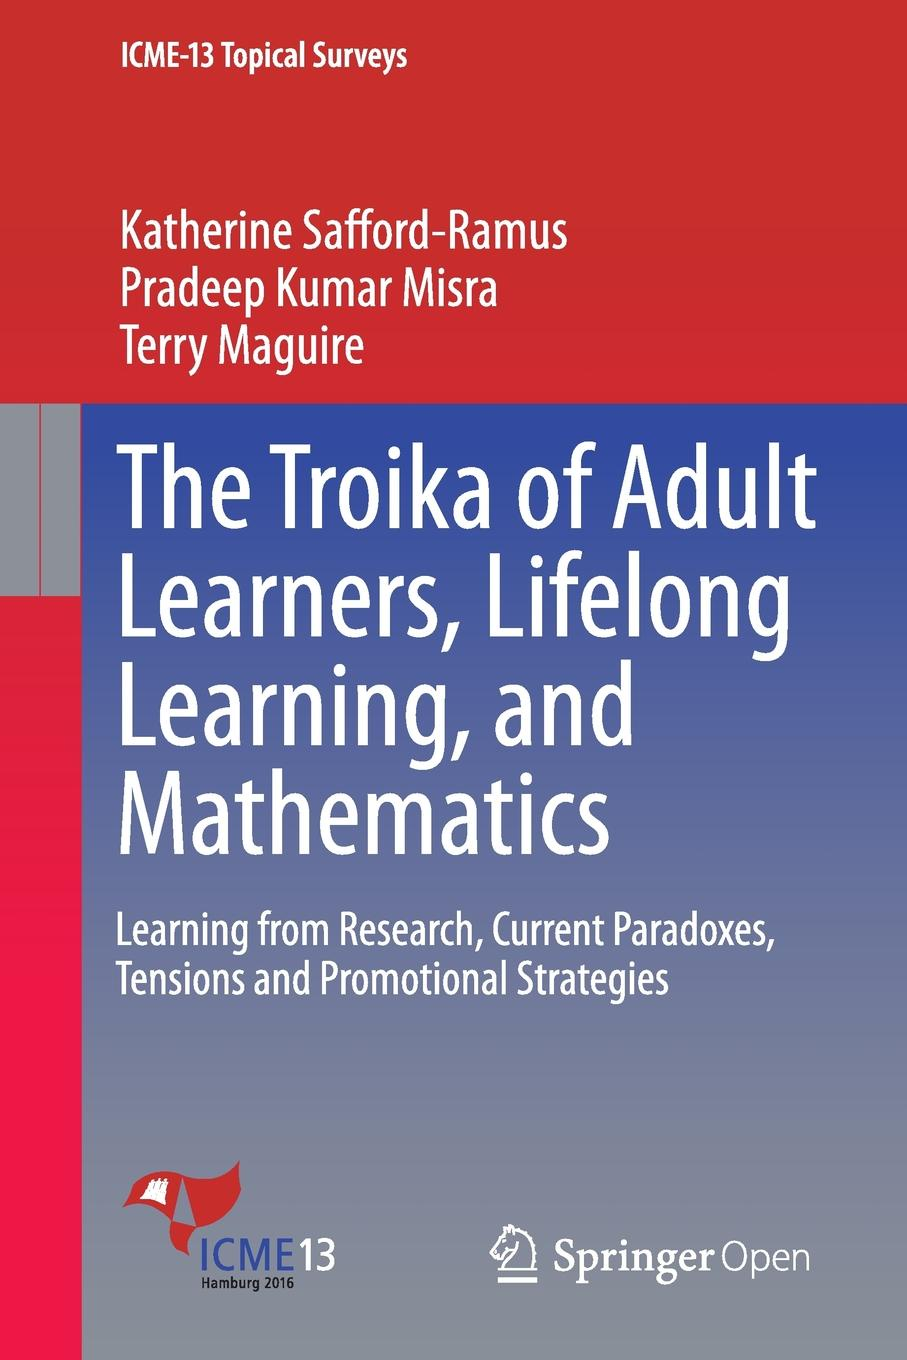 Katherine Safford-Ramus, Pradeep Kumar Misra, Terry Maguire The Troika of Adult Learners, Lifelong Learning, and Mathematics. Learning from Research, Current Paradoxes, Tensions and Promotional Strategies terry mclaughlin learning curve